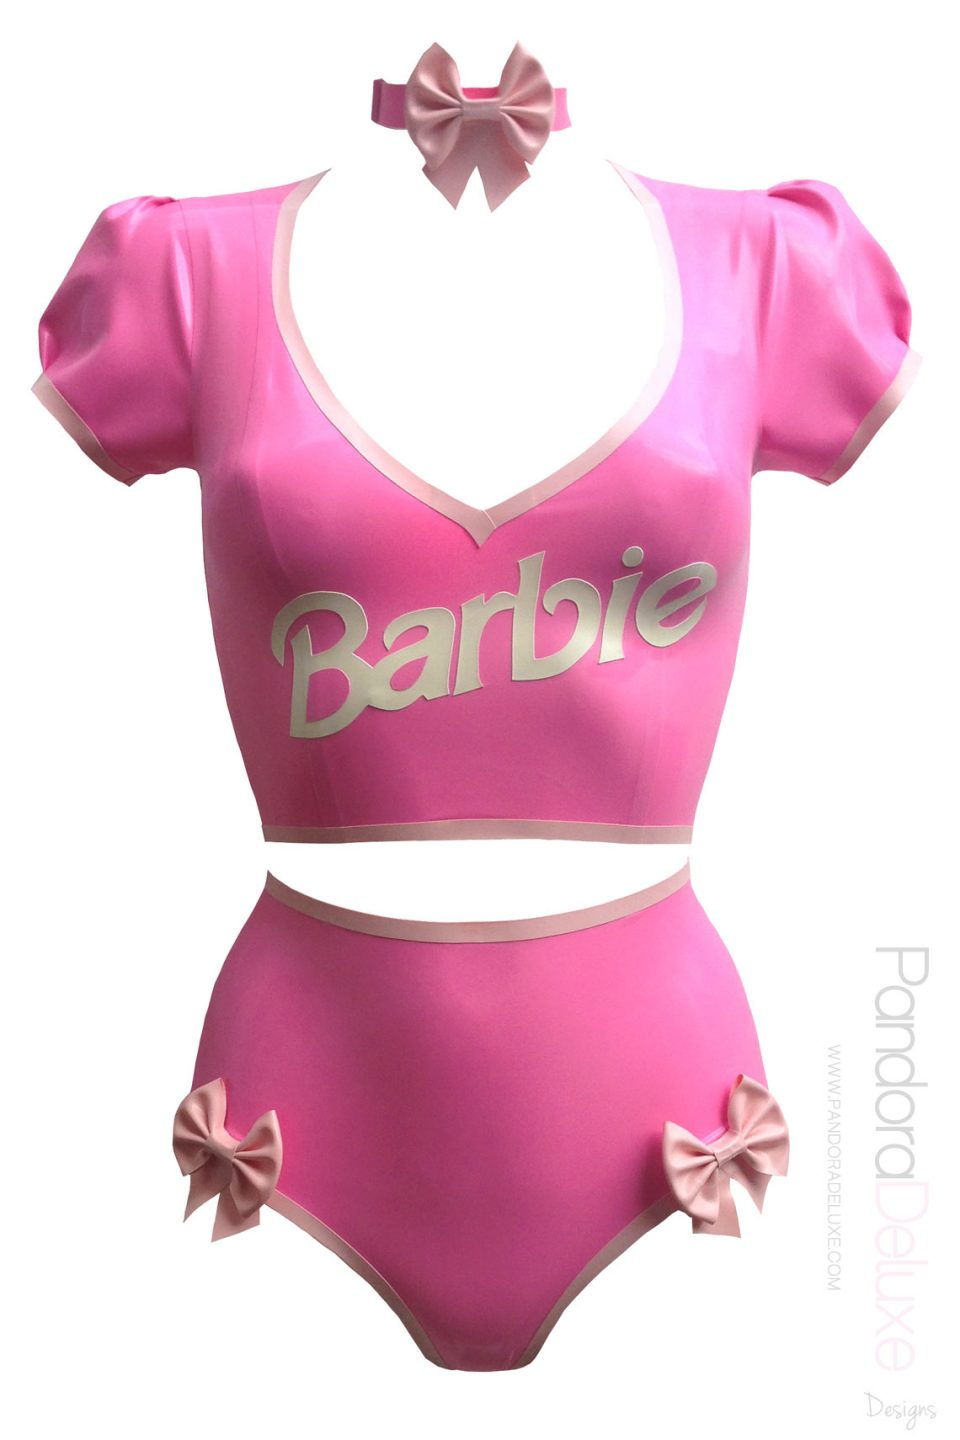 barbie-doll-inspired-latex-costume-1